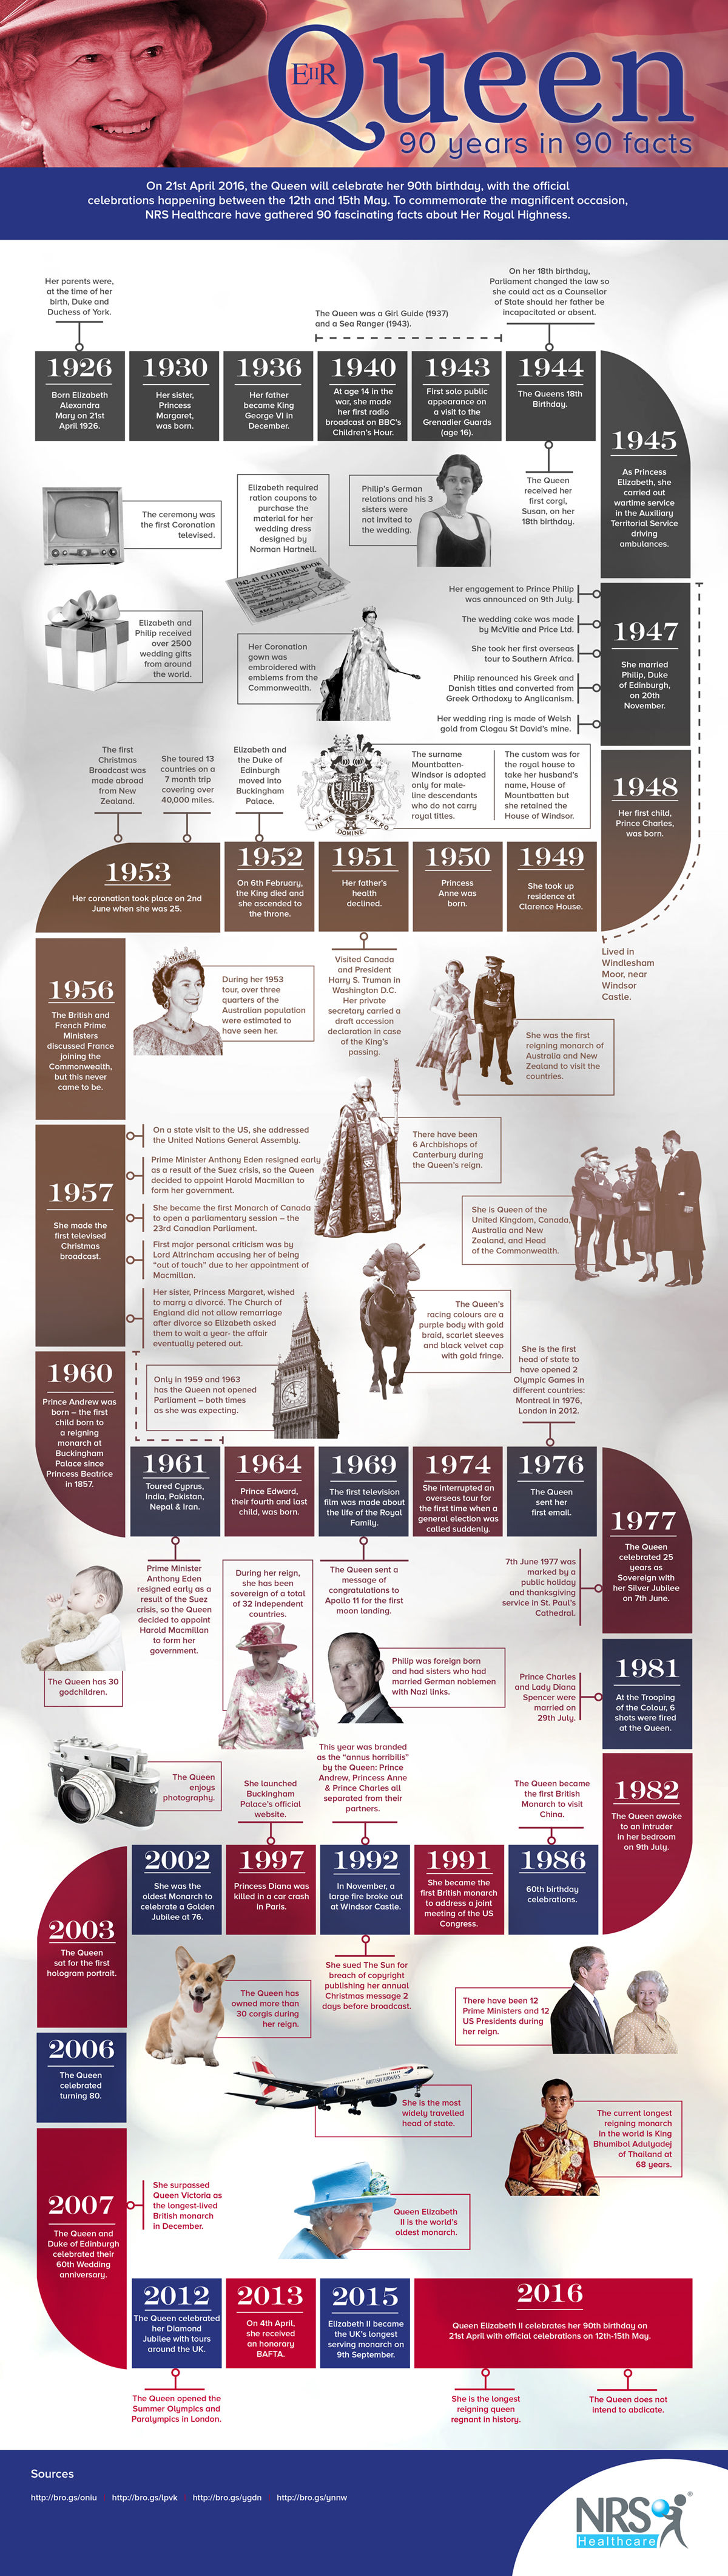 Queen's 90th Birthday infographic